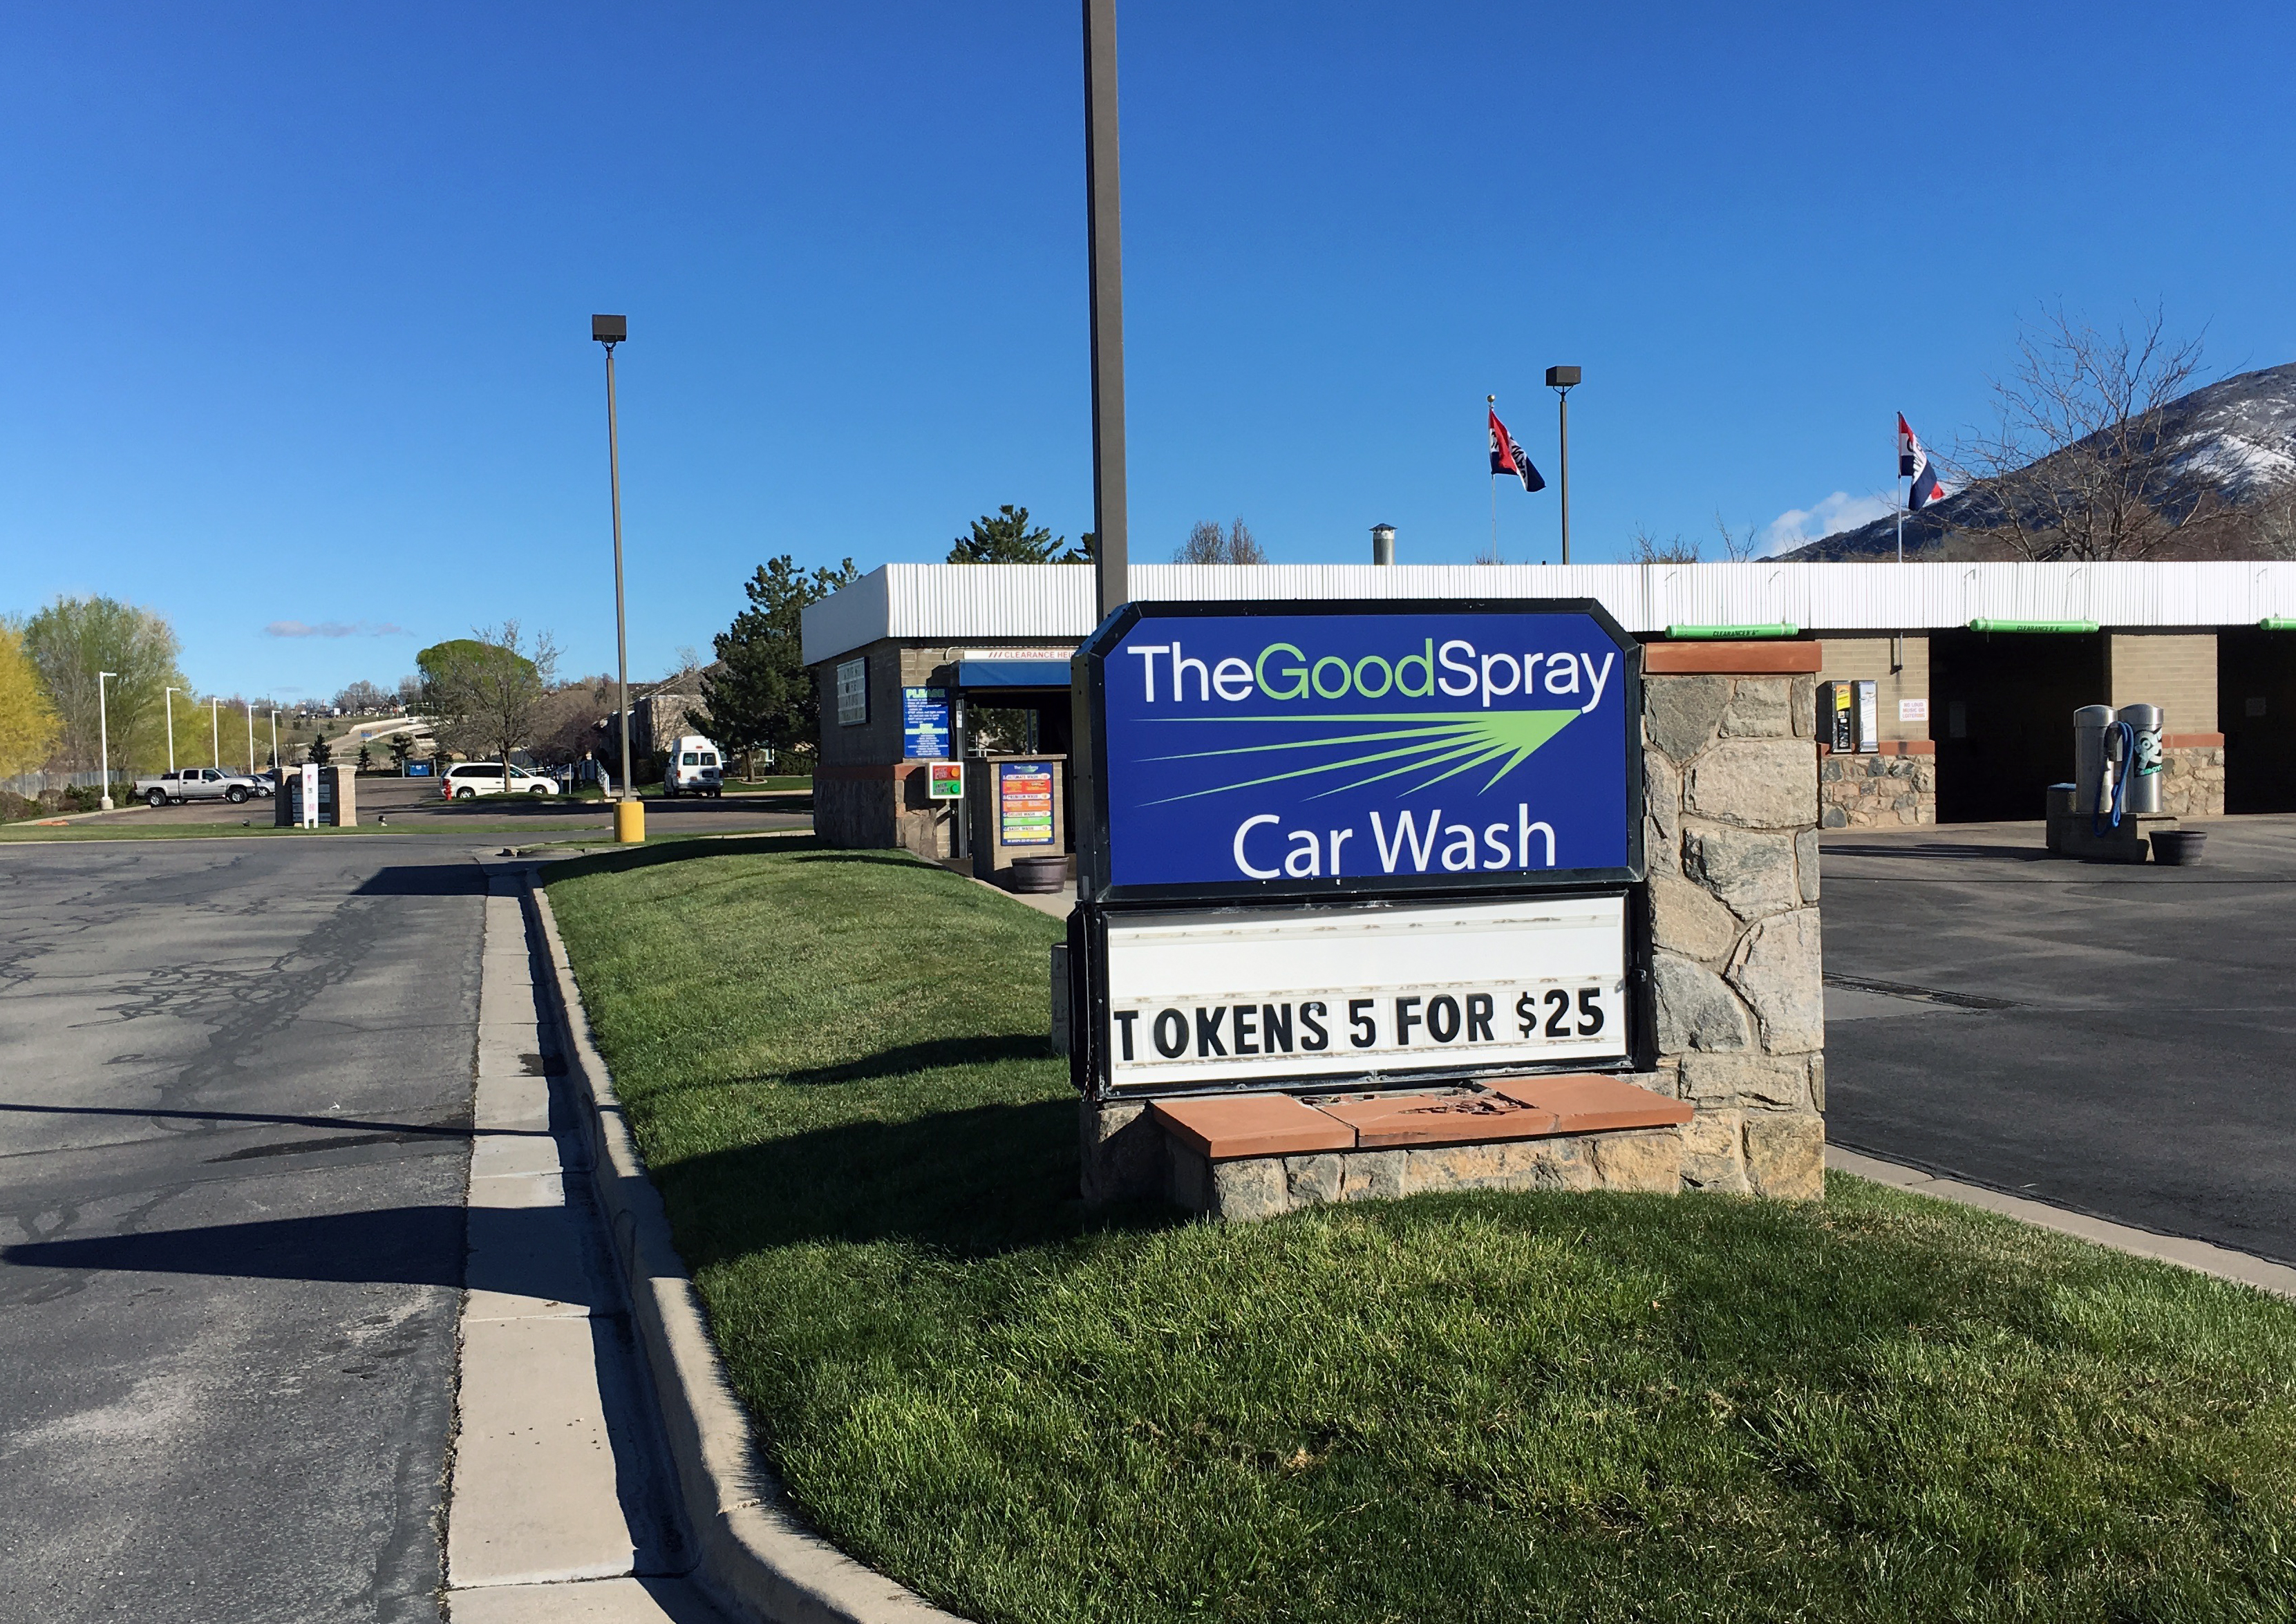 The Good Spray Car Wash